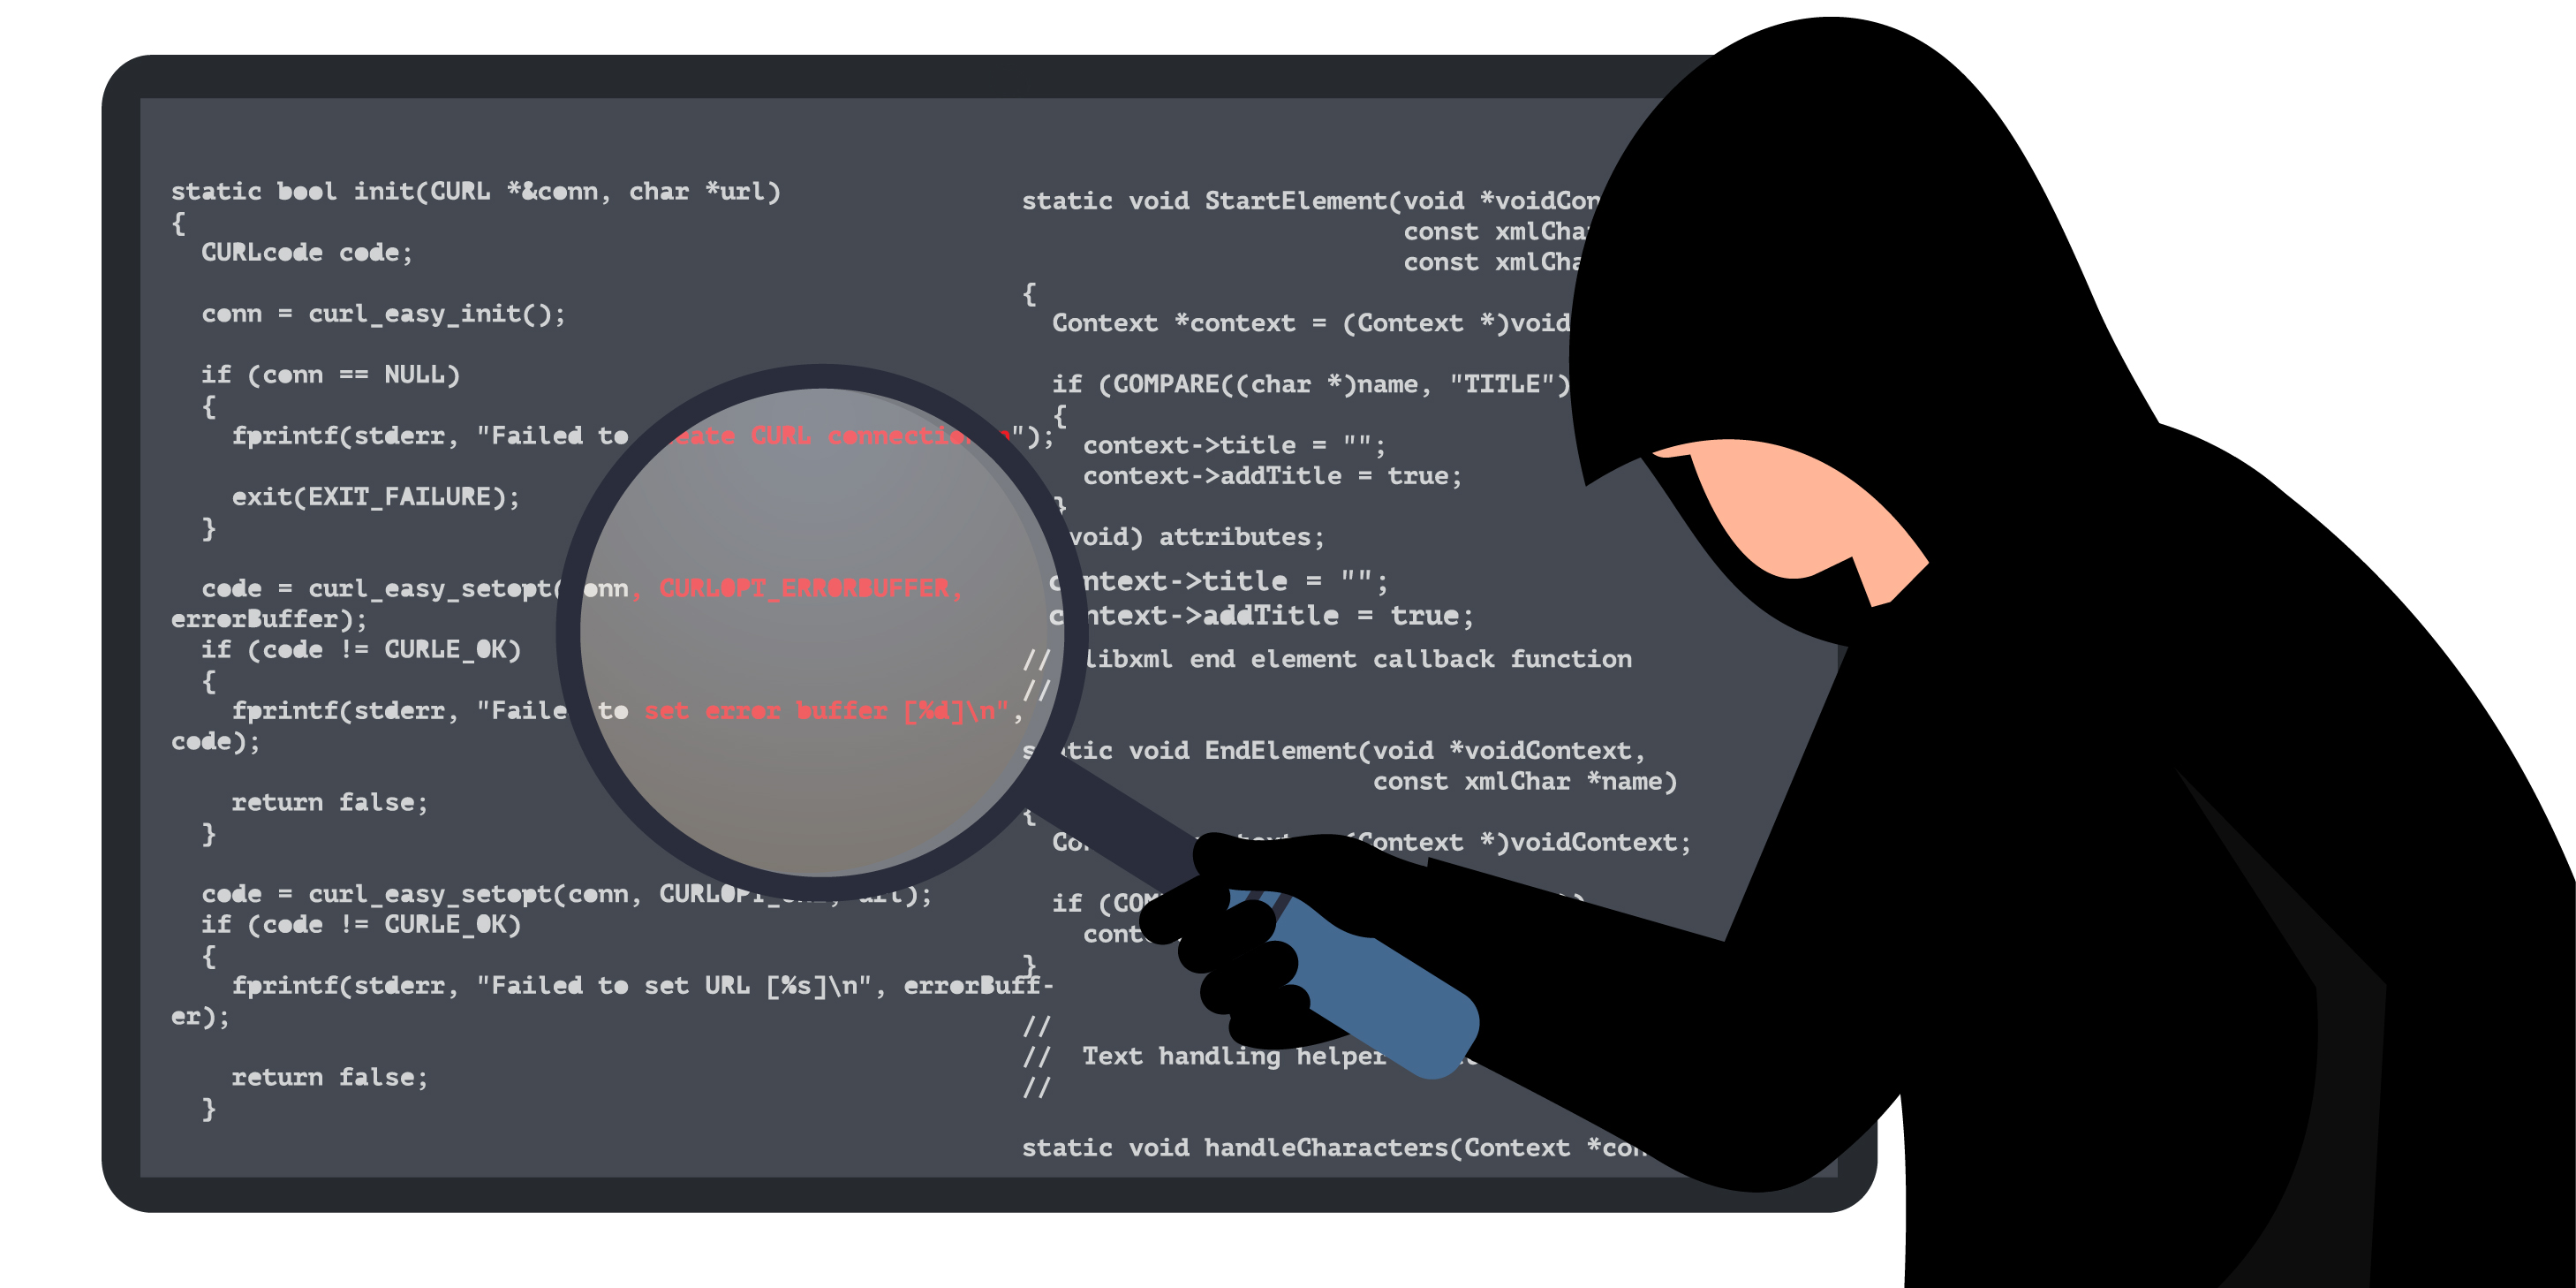 hacker finding and identifying vulnerabilities in code